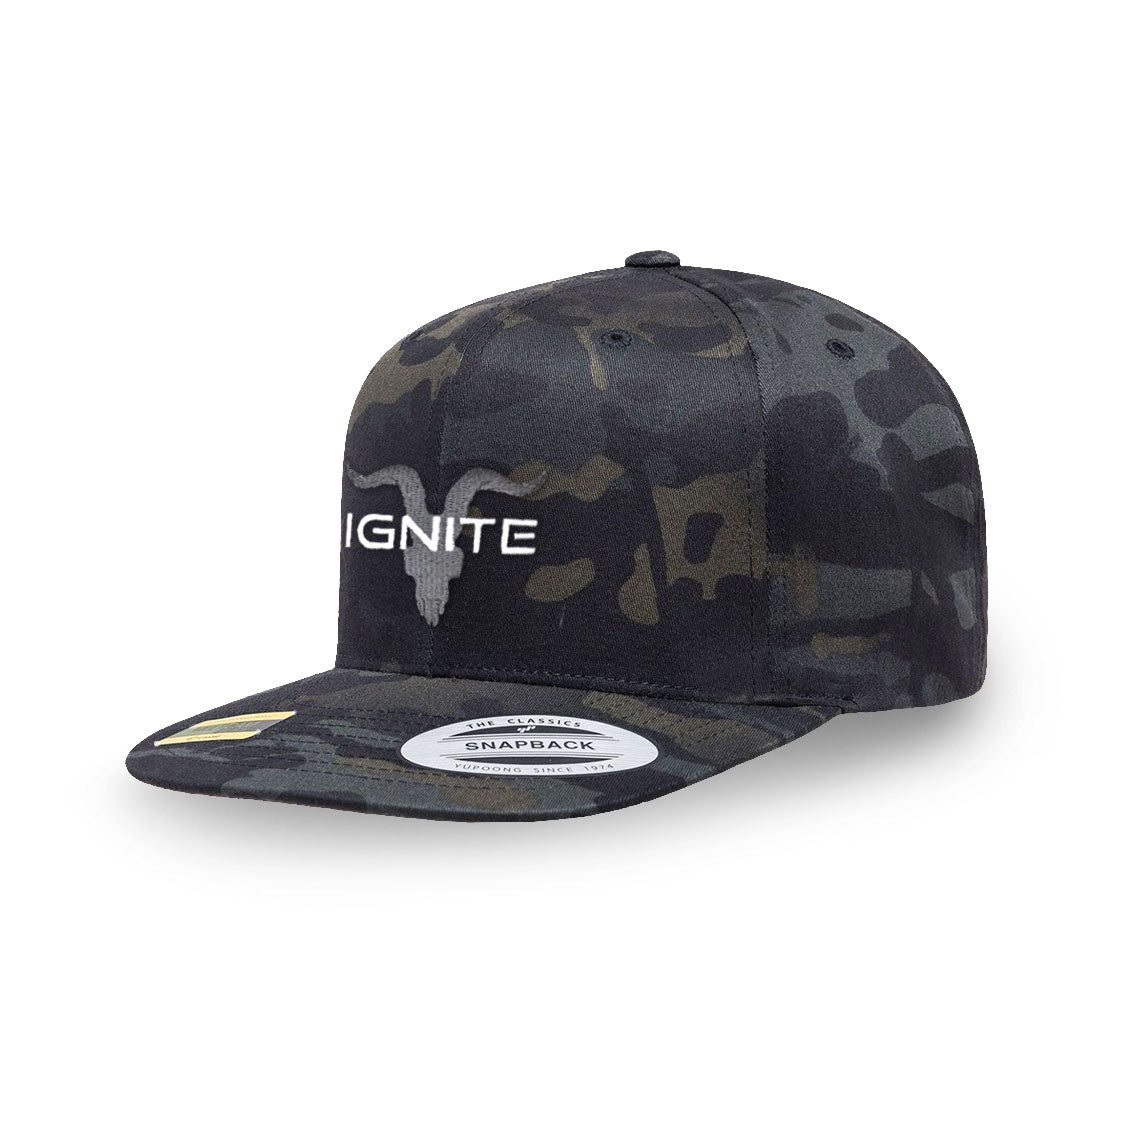 Ignite Premium Collection Dark Camo Flat Bill Snapback with Grey Logo